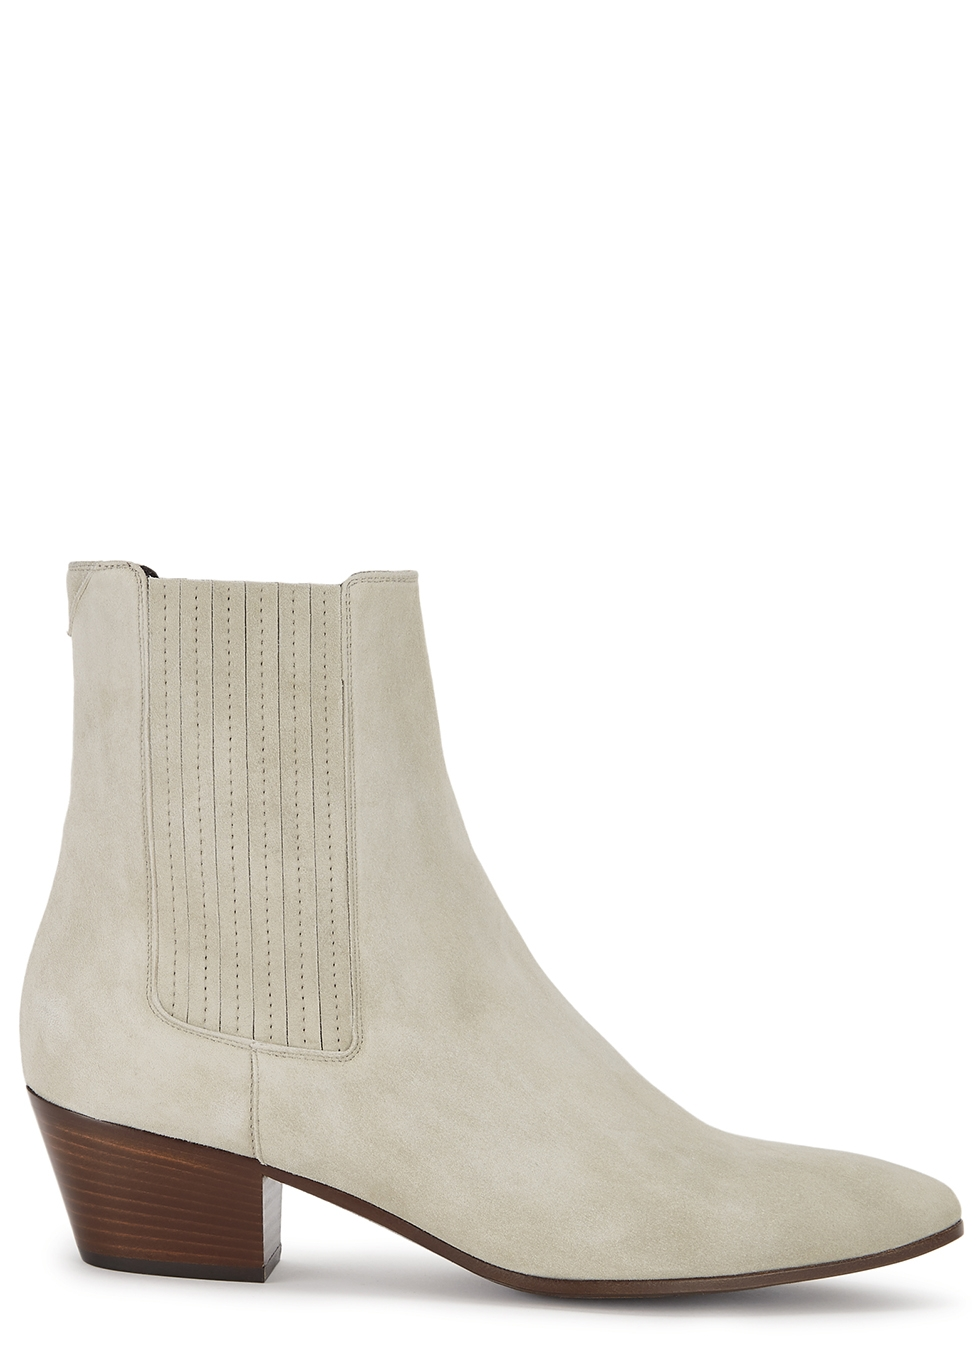 West 45 grey suede Chelsea boots